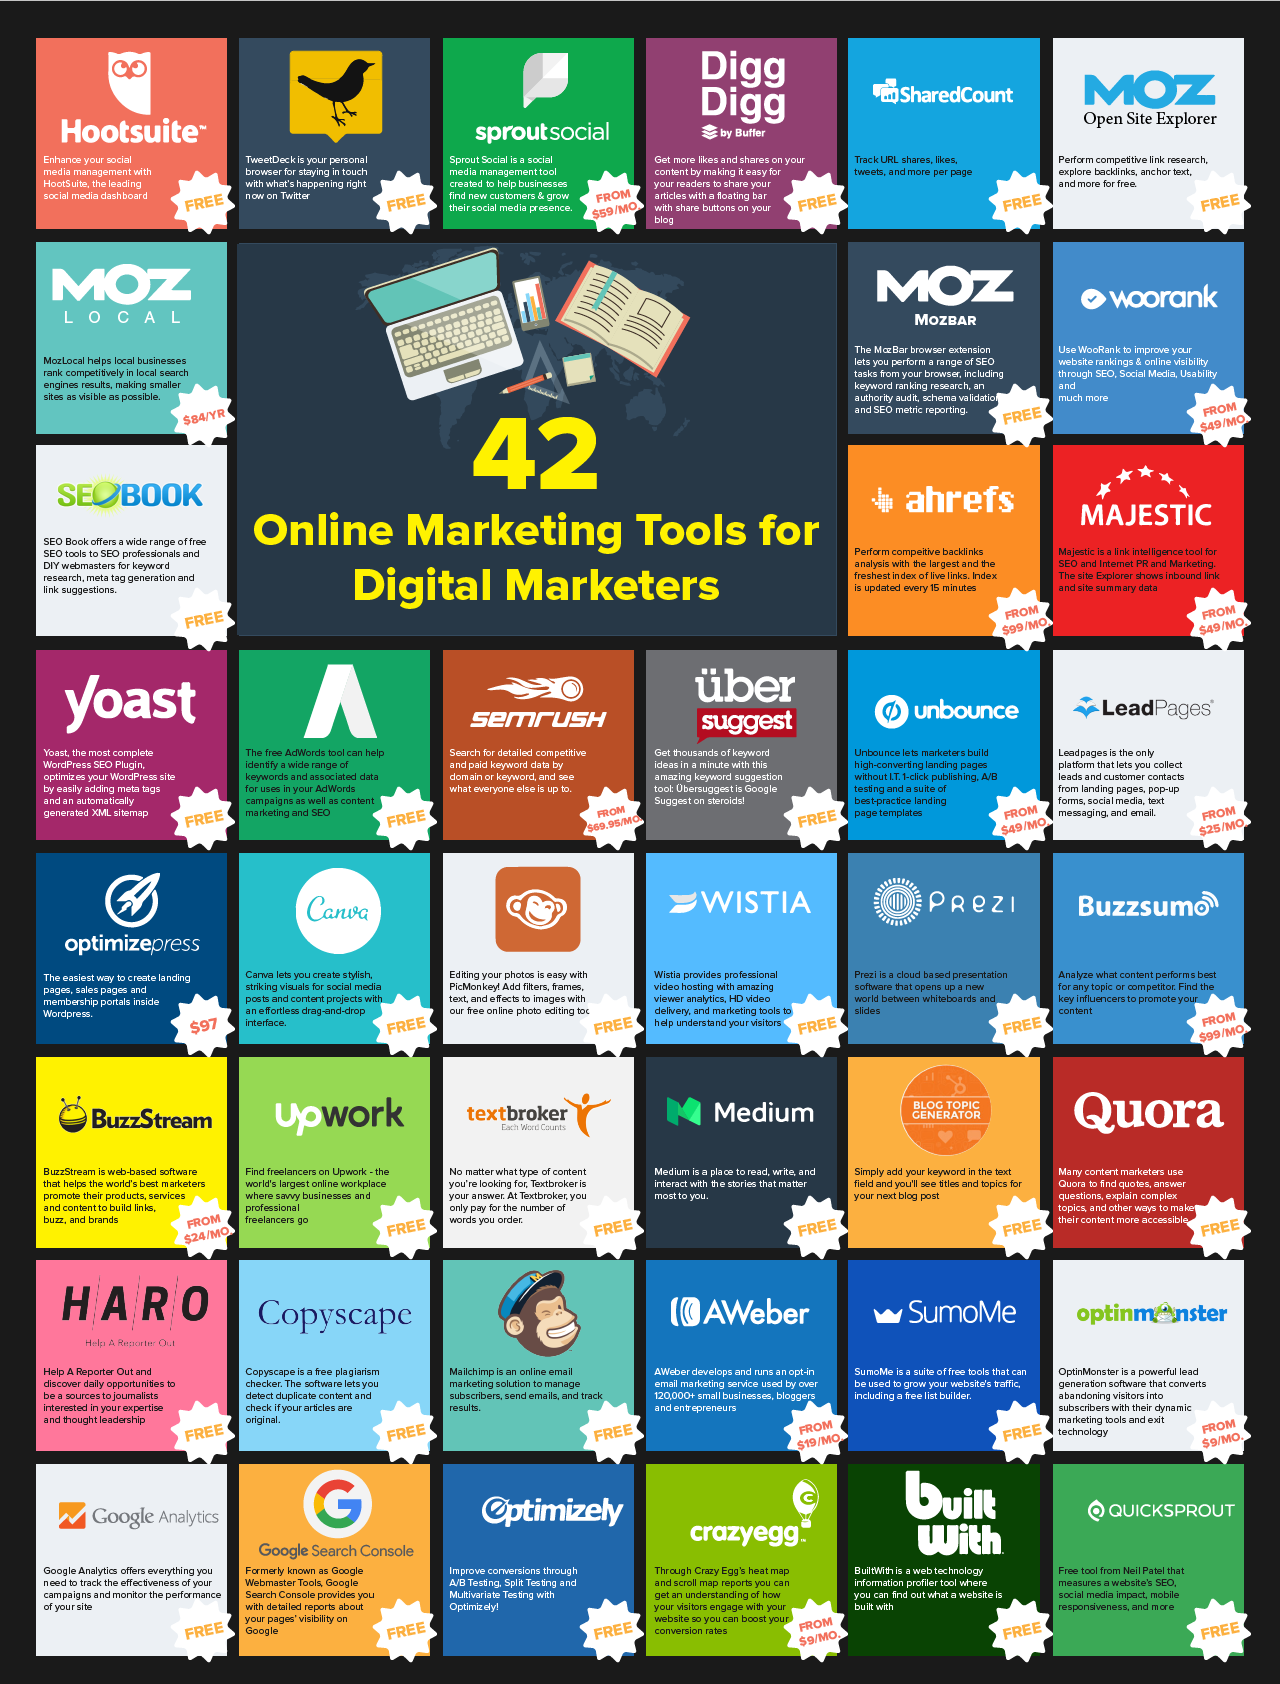 42 Online Marketing Tools for Digital Marketers